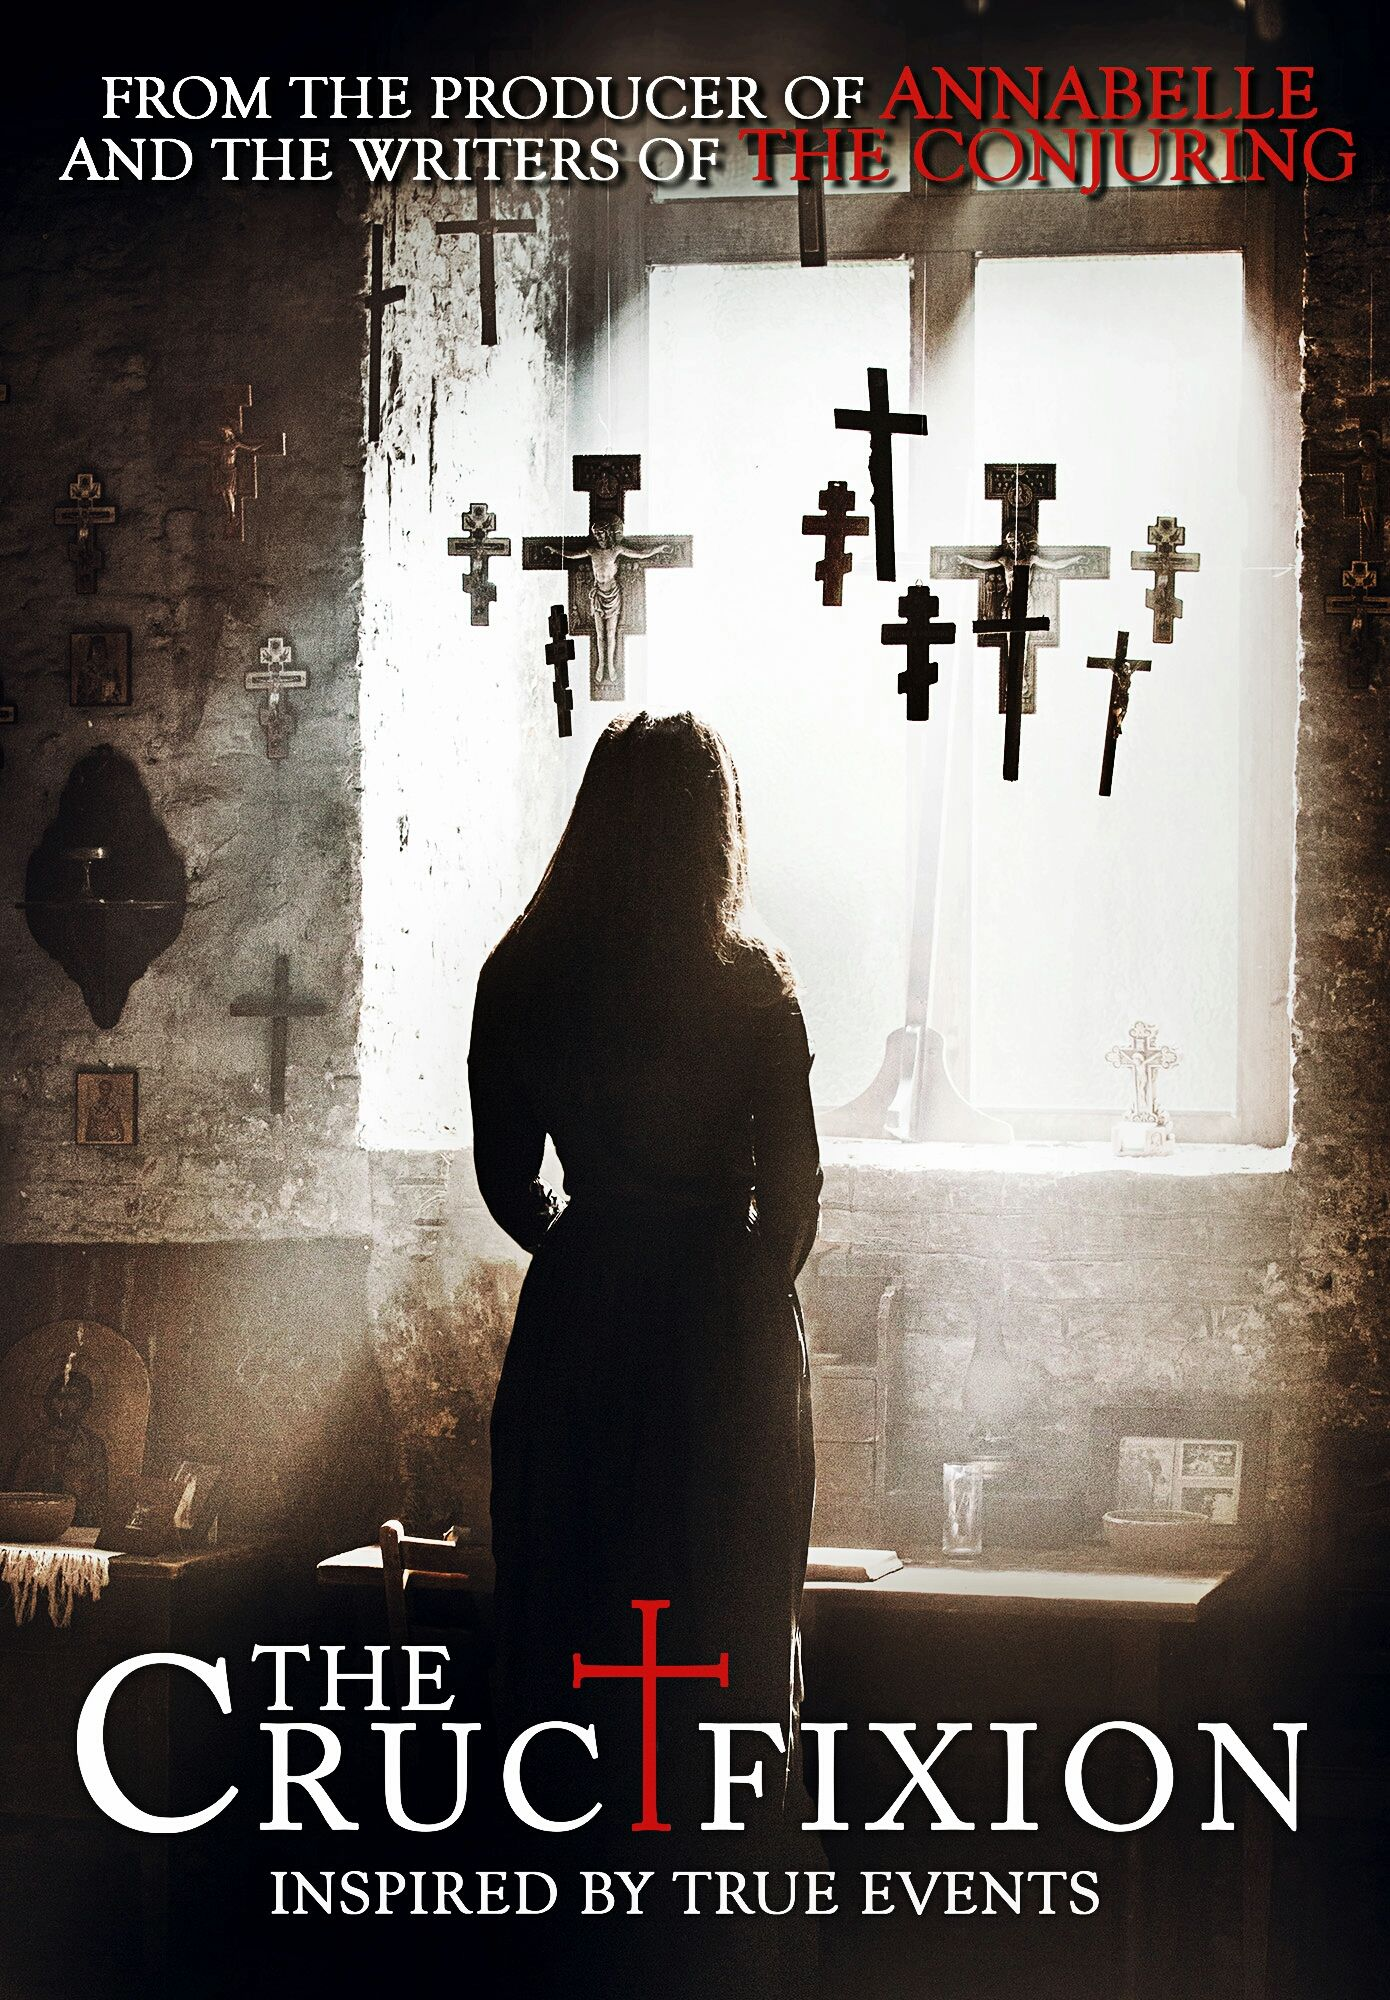 full name: the crucifixion 2017 free download currently movies